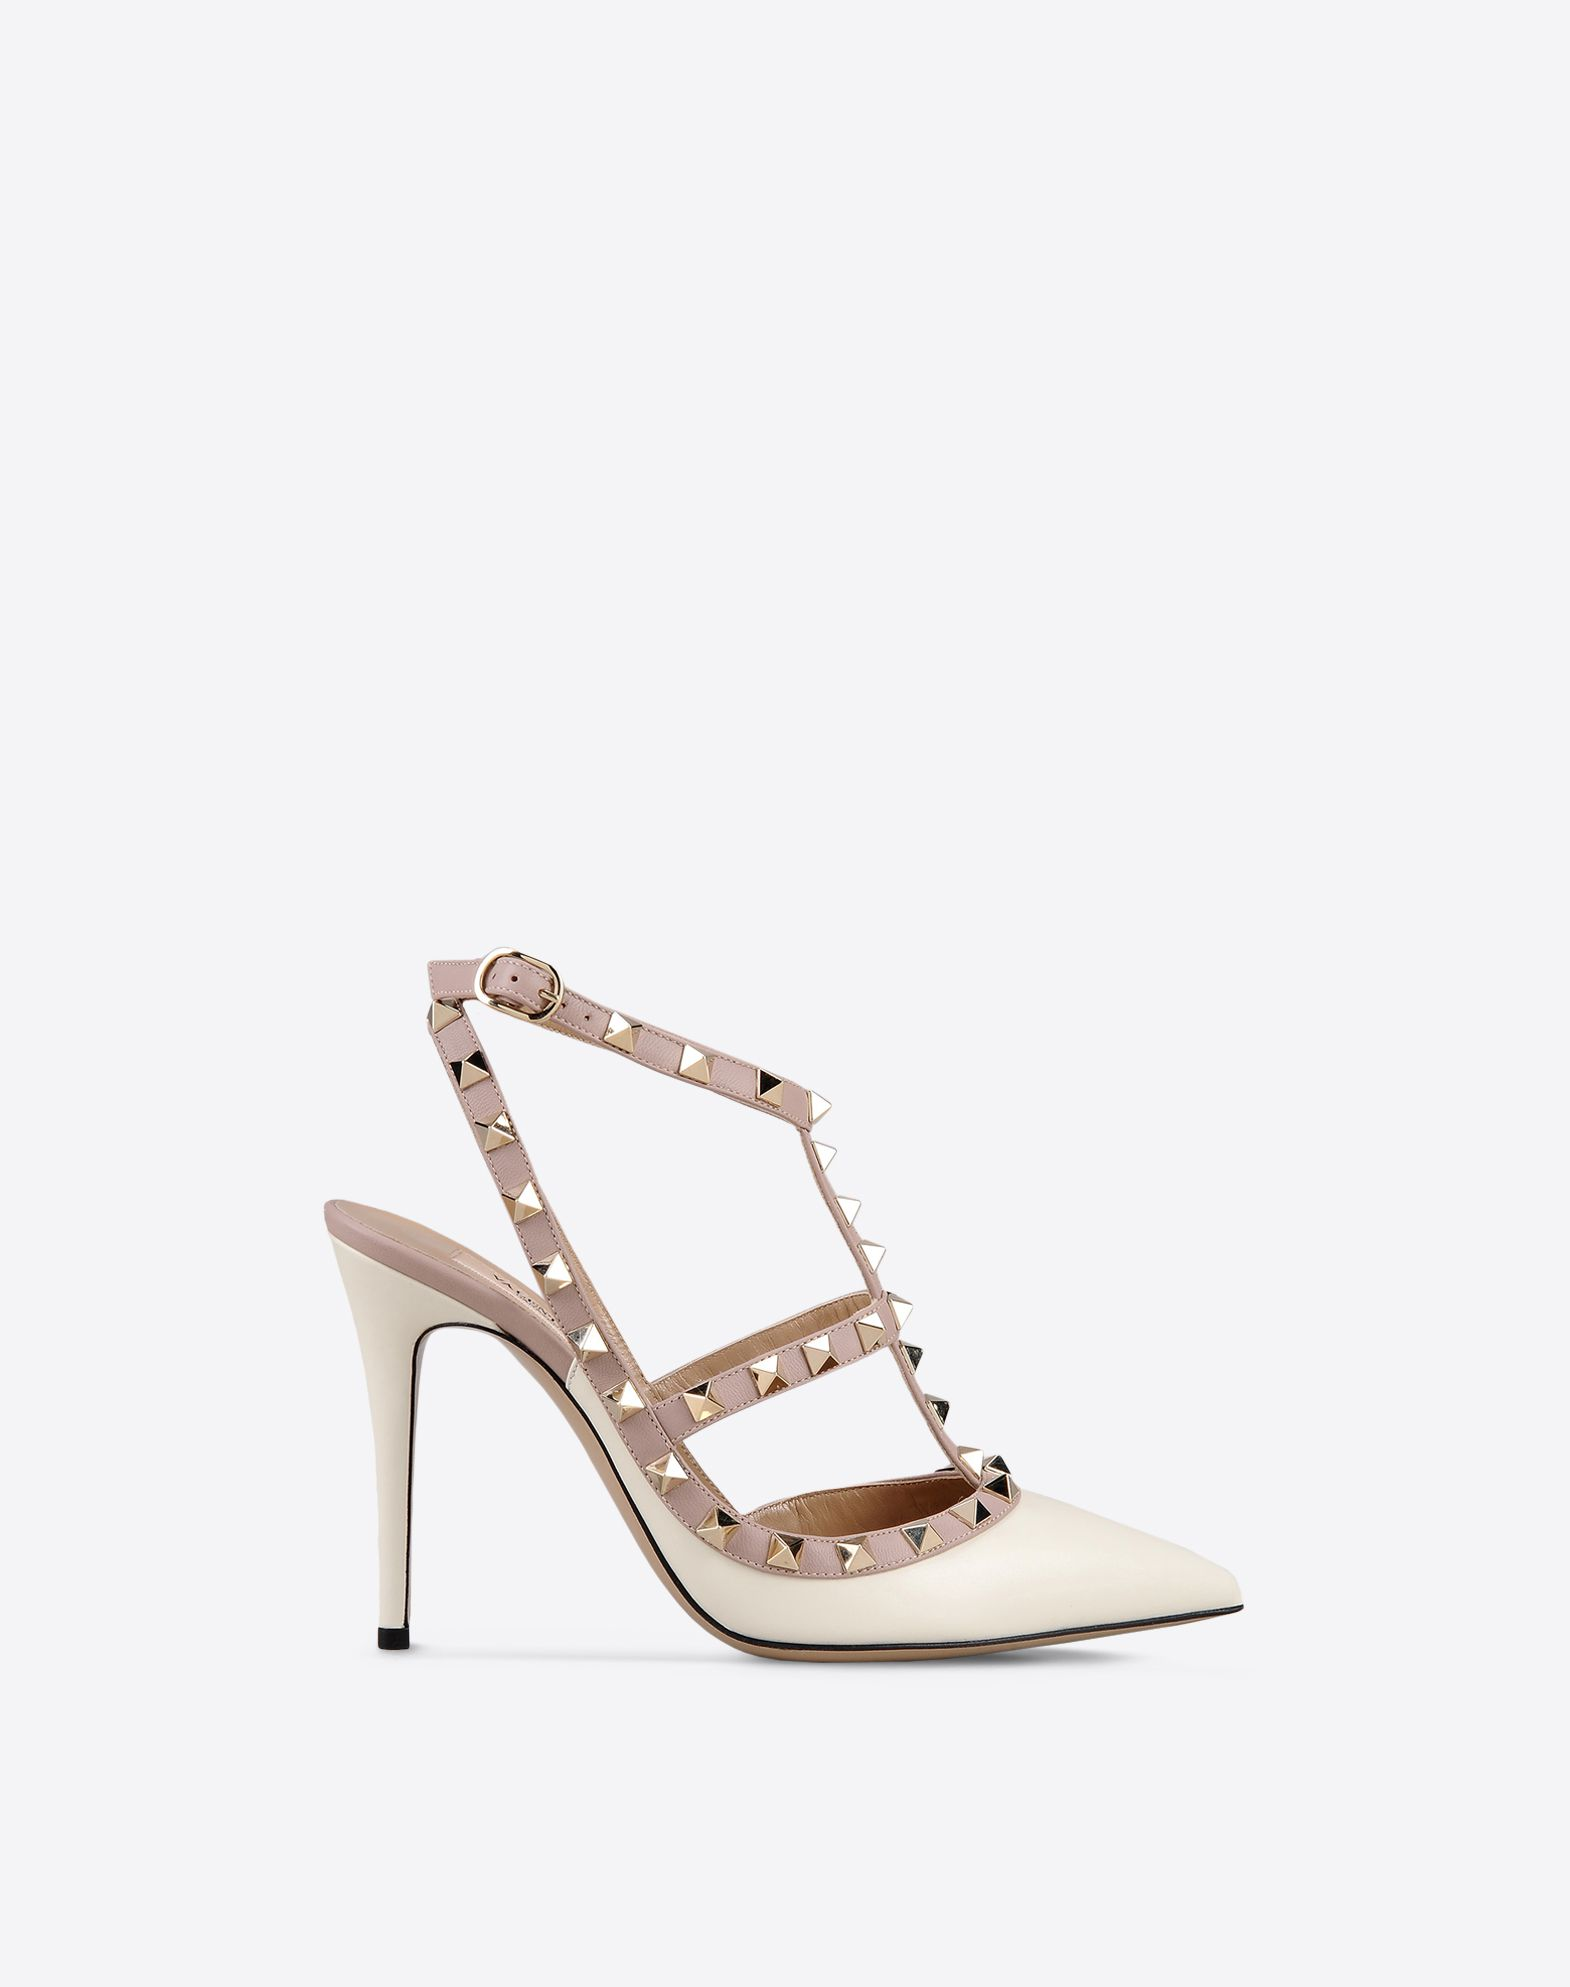 VALENTINO Studs Solid colour Buckling ankle strap closure Leather sole Narrow toeline Spike heel  11001438pw